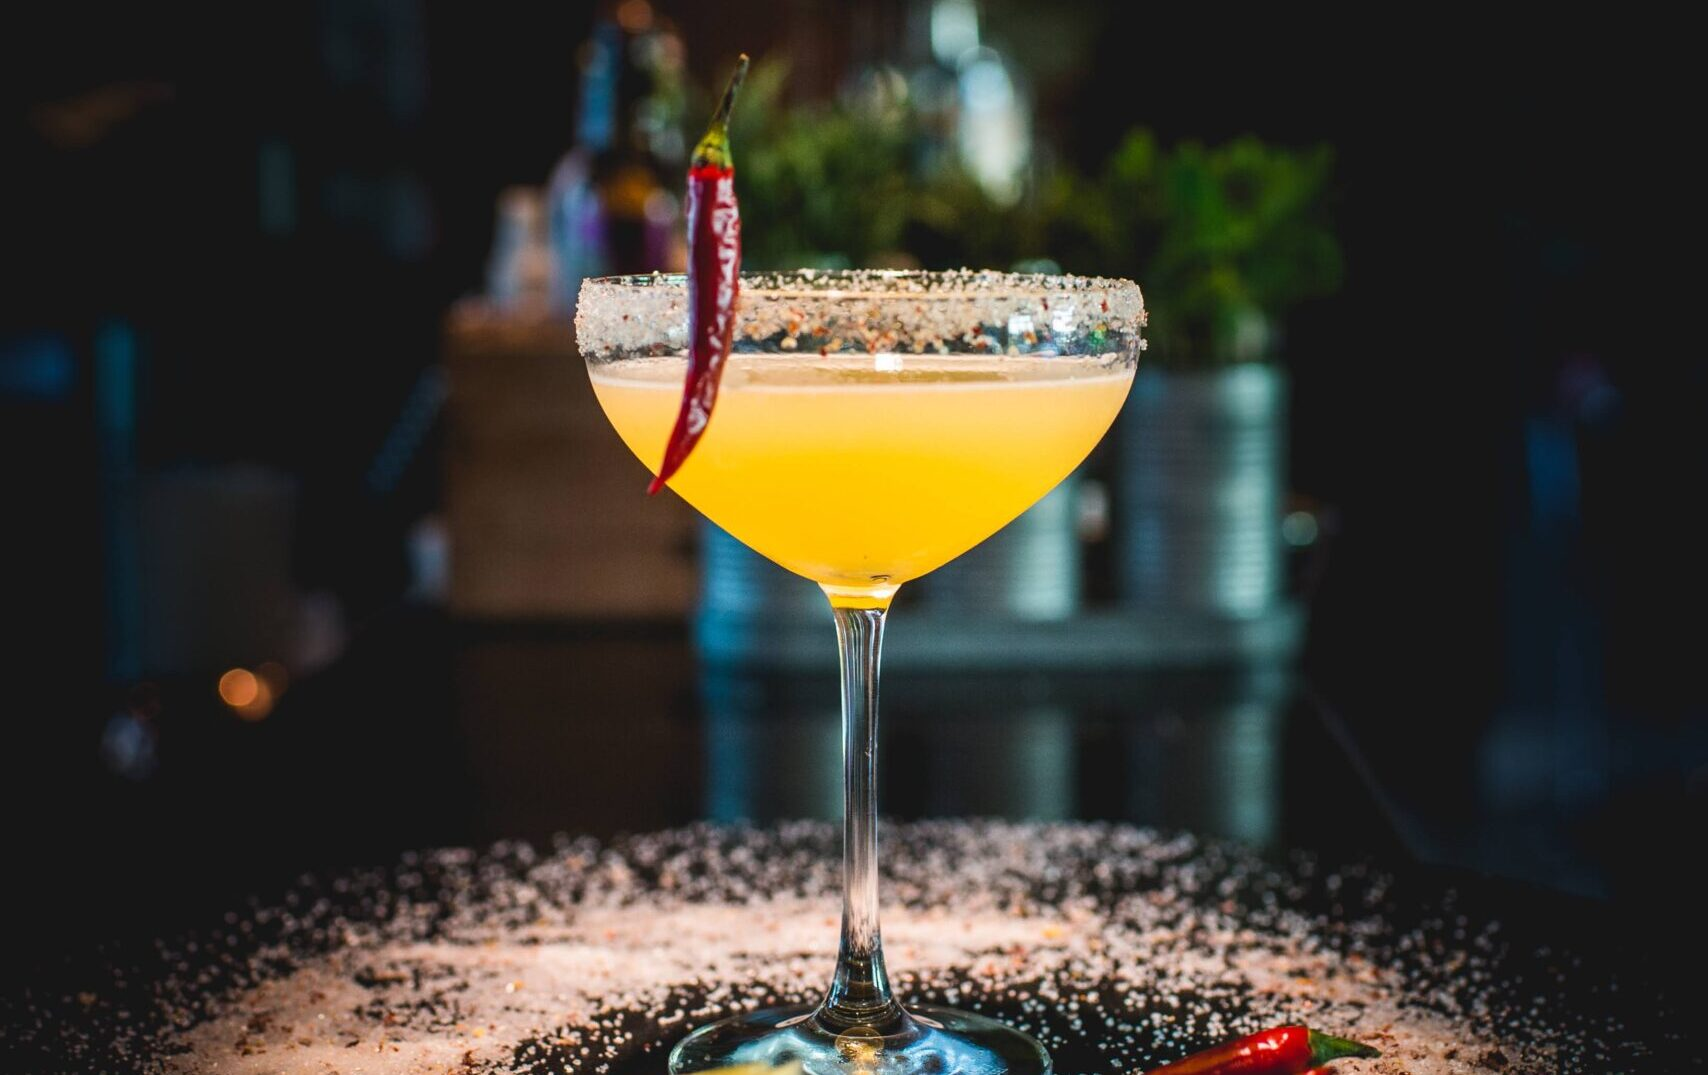 cocktail-recipes-to-try-on-national-tequila-day